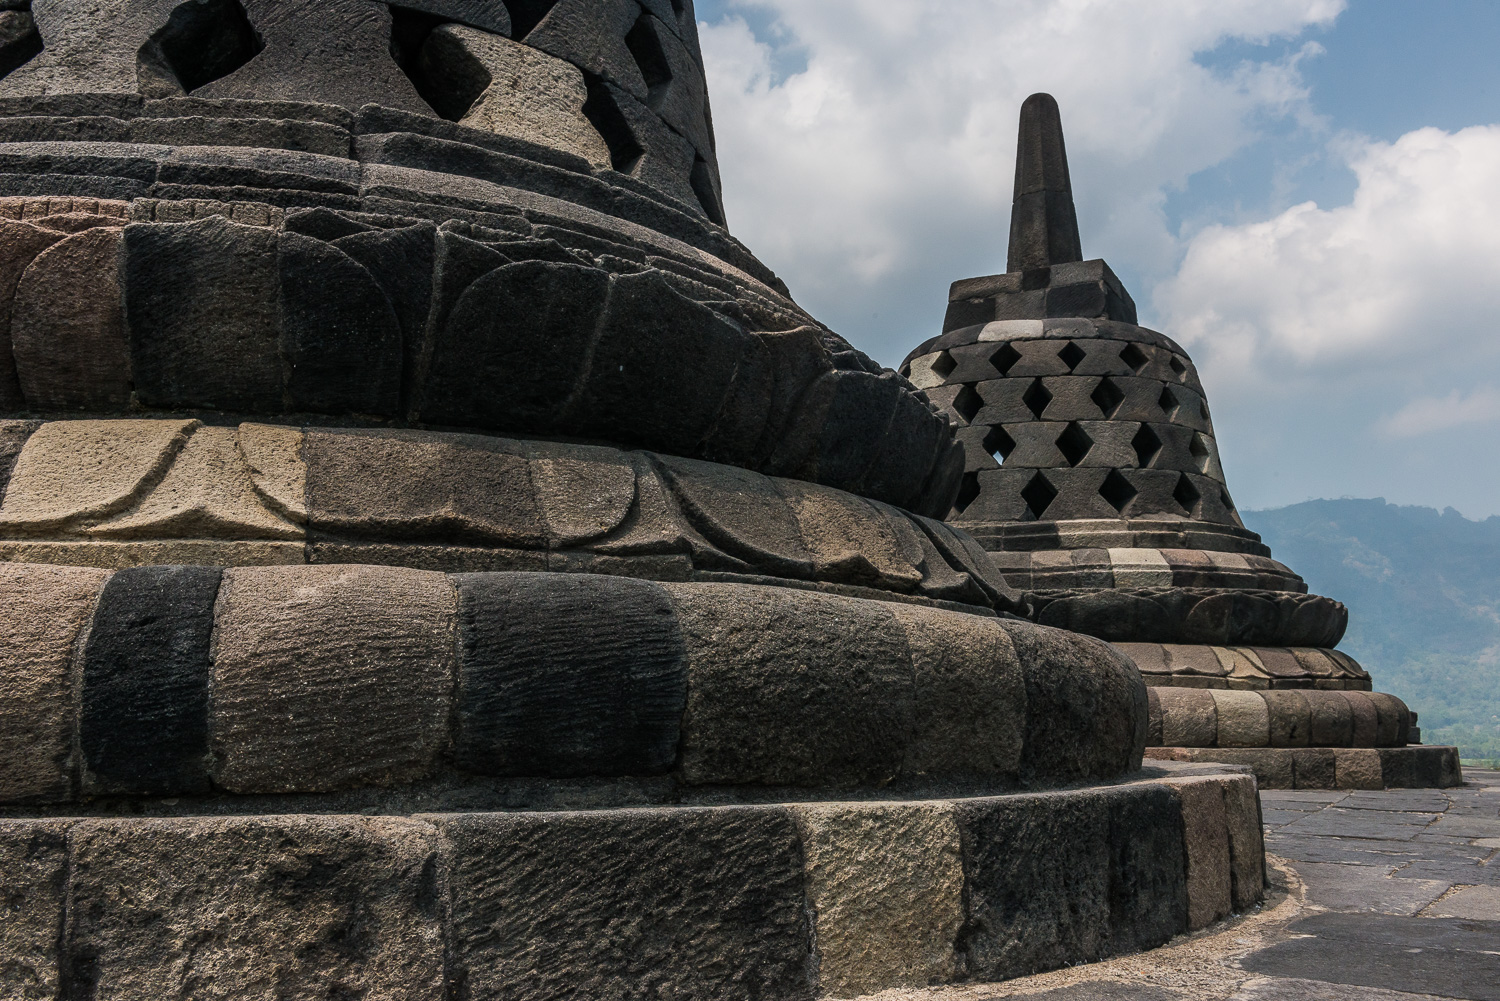 Stupa, Borobudur, Magelang, Central Java, Indonesia